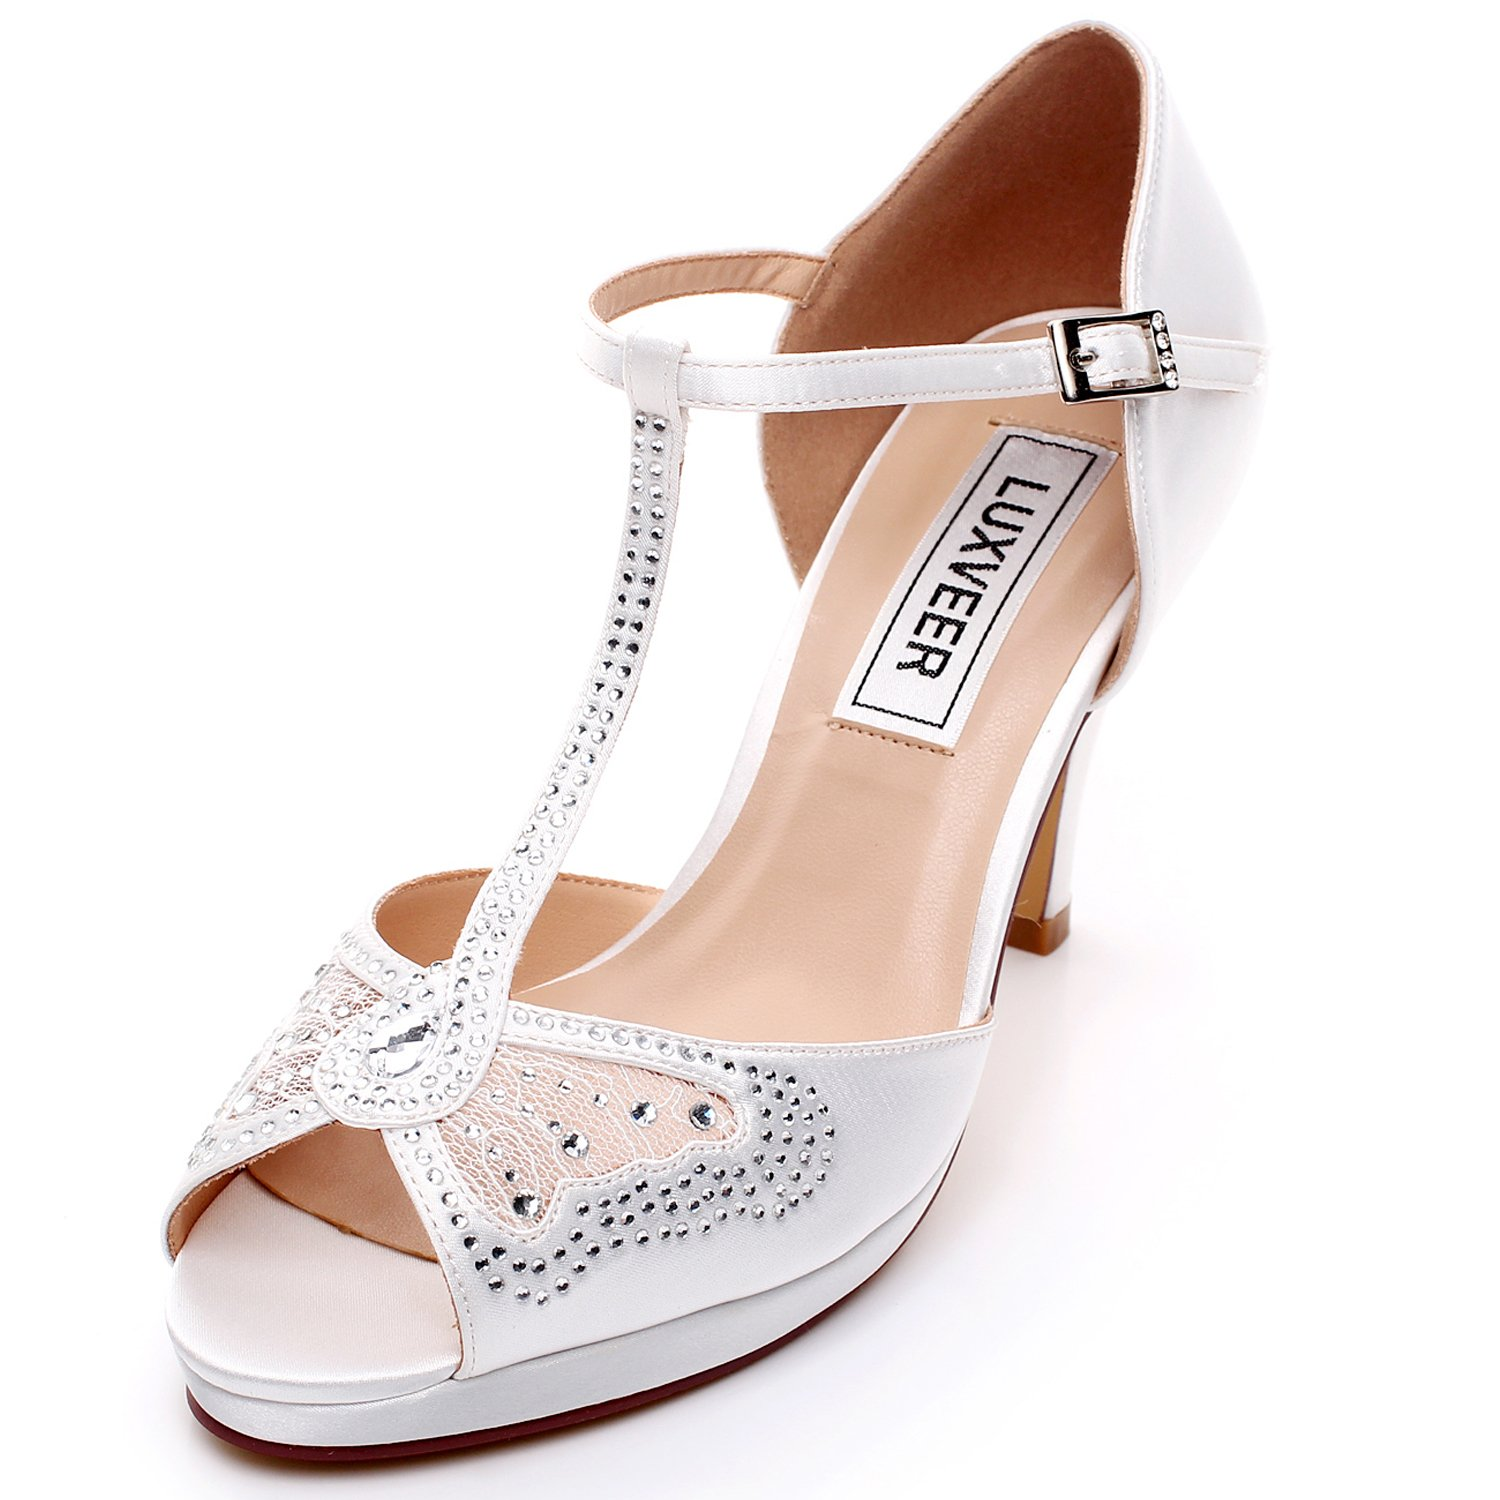 1950s Style Shoes LUXVEER Women Wedding Sandals with Silver Rhinestone and Lace Butterfly - Heels 3.5inch $58.97 AT vintagedancer.com